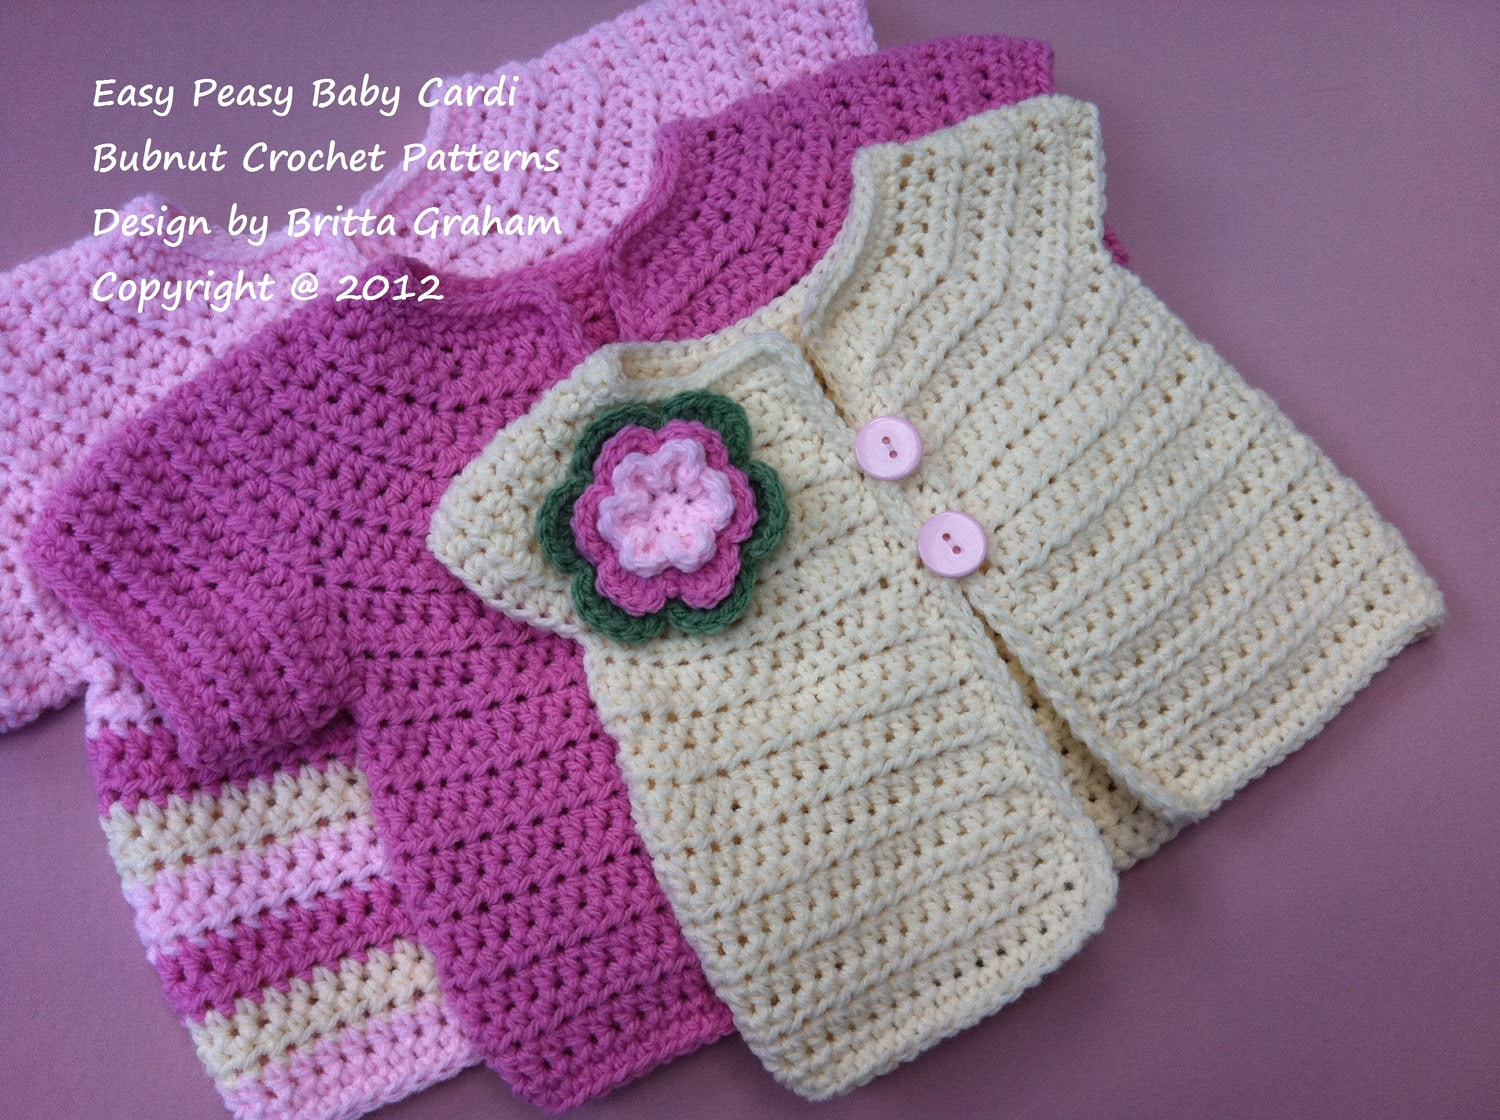 Crochet Baby Jacket Pattern - Easy Peasy Cardigan Crochet Pattern No ...